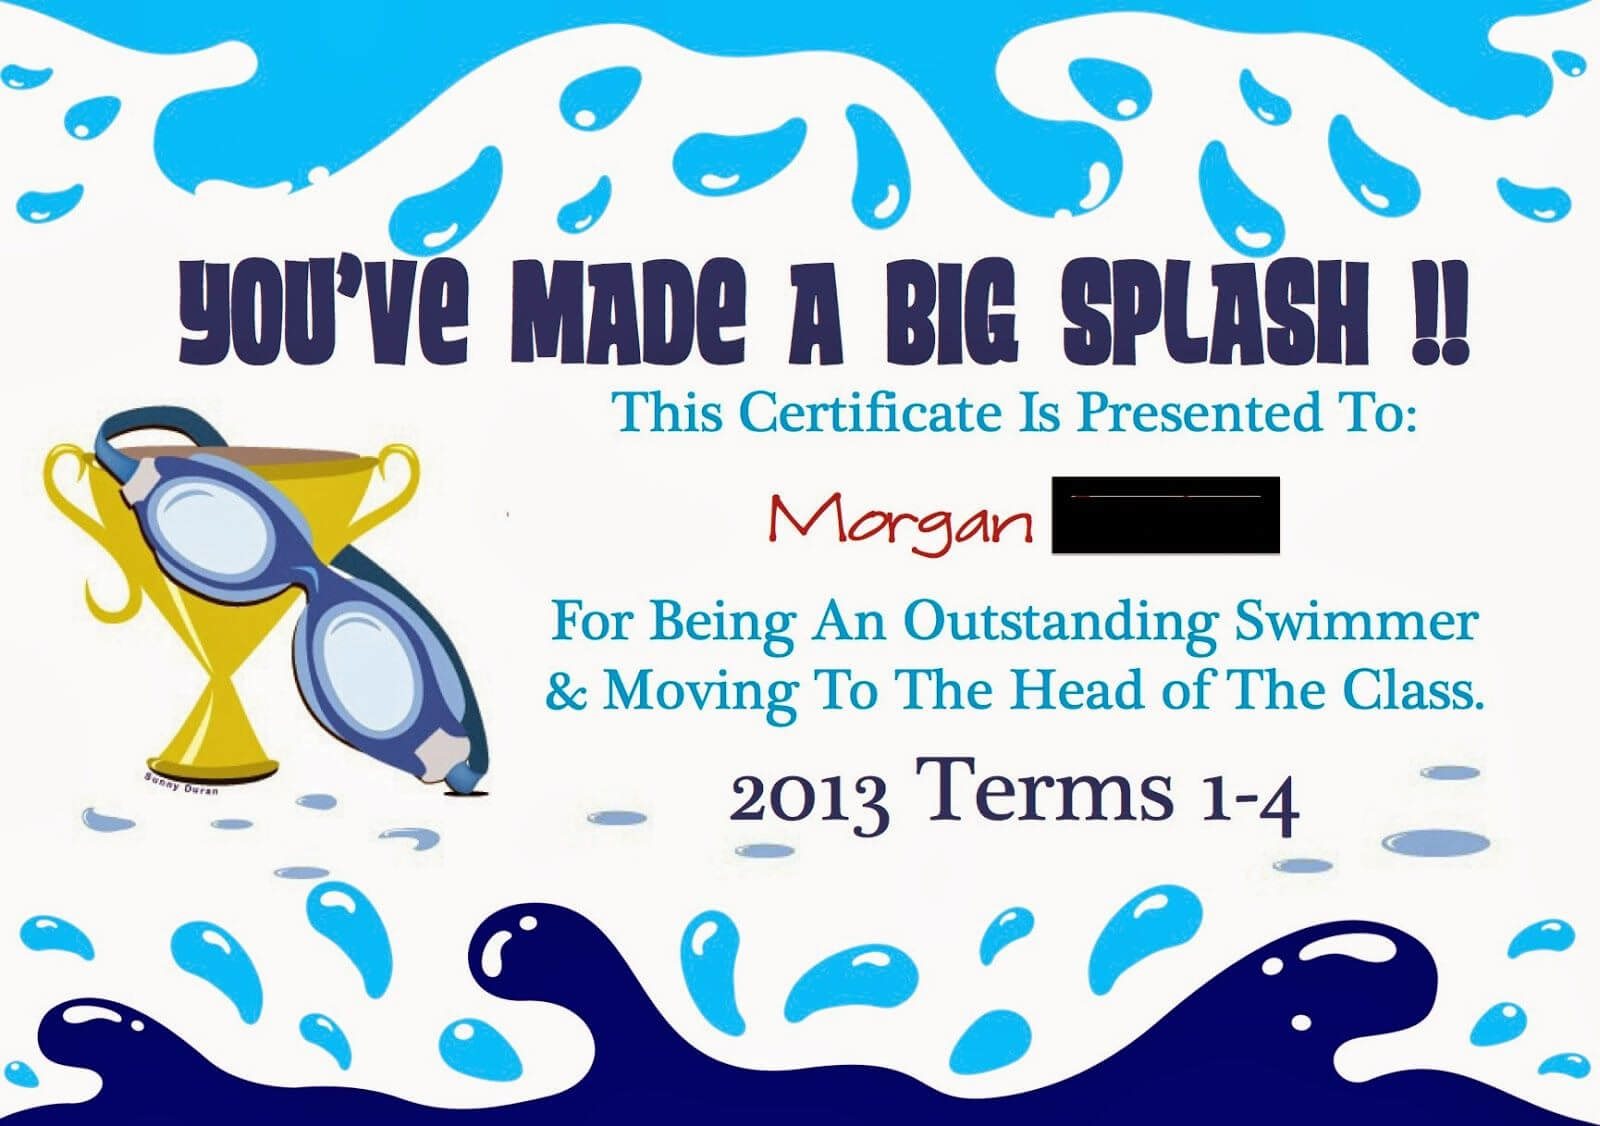 Pinmarwa Mattar On Swimming | Swimming Lessons For Kids With Swimming Certificate Templates Free